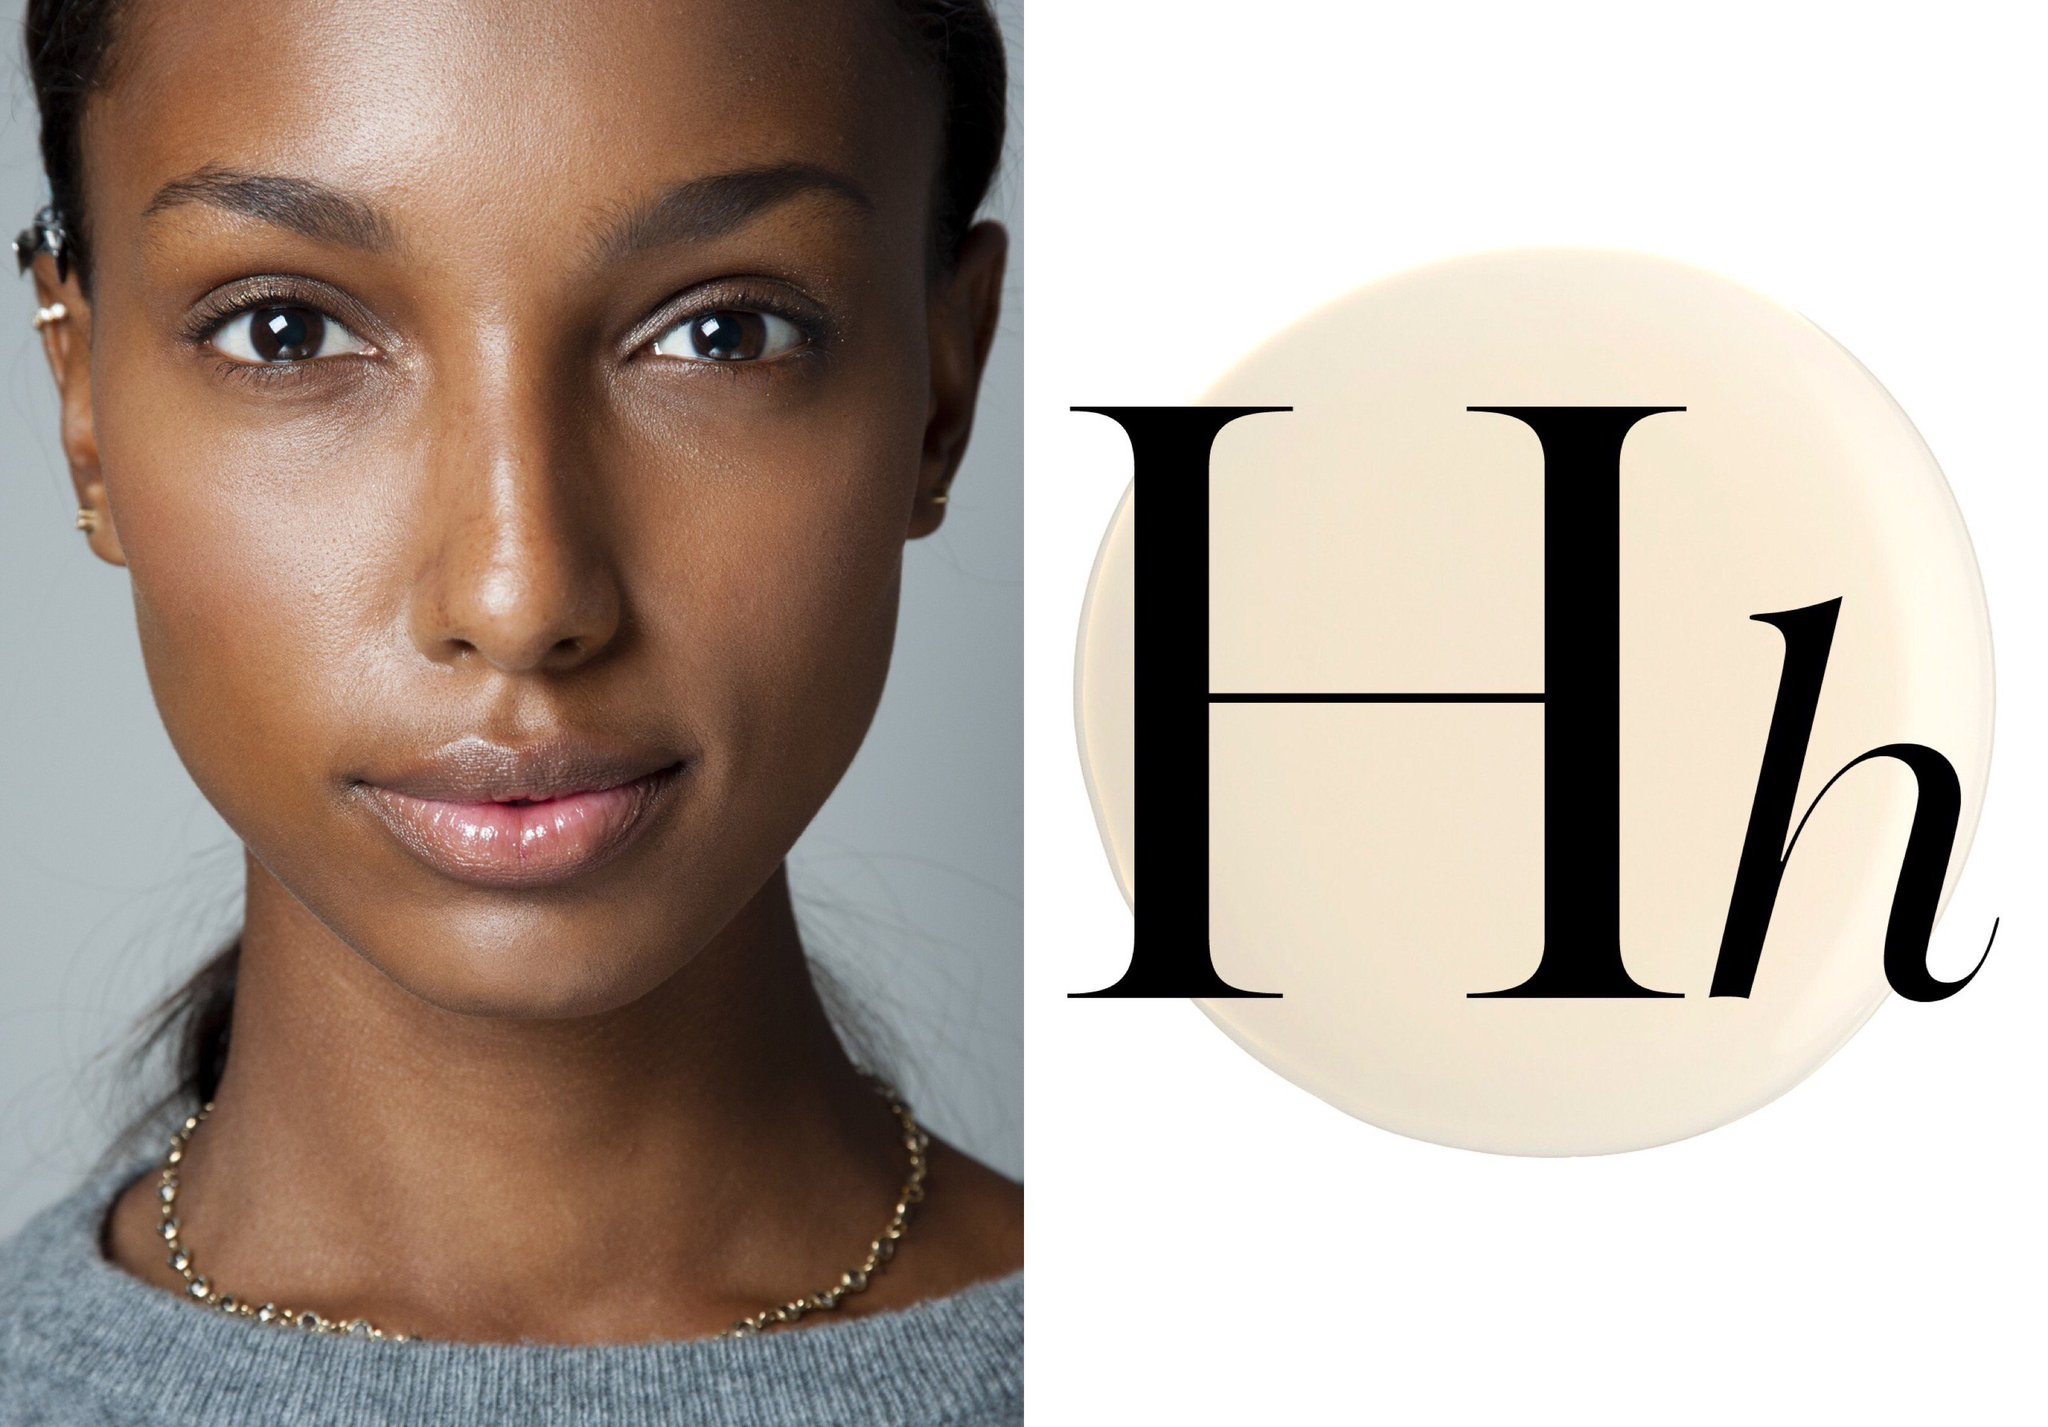 Next up in the Vogue Skincare Ingredients Alphabet - H is for Hyaluronic Acid: https://t.co/QQZG33VYZf https://t.co/Jz7OUMh84m